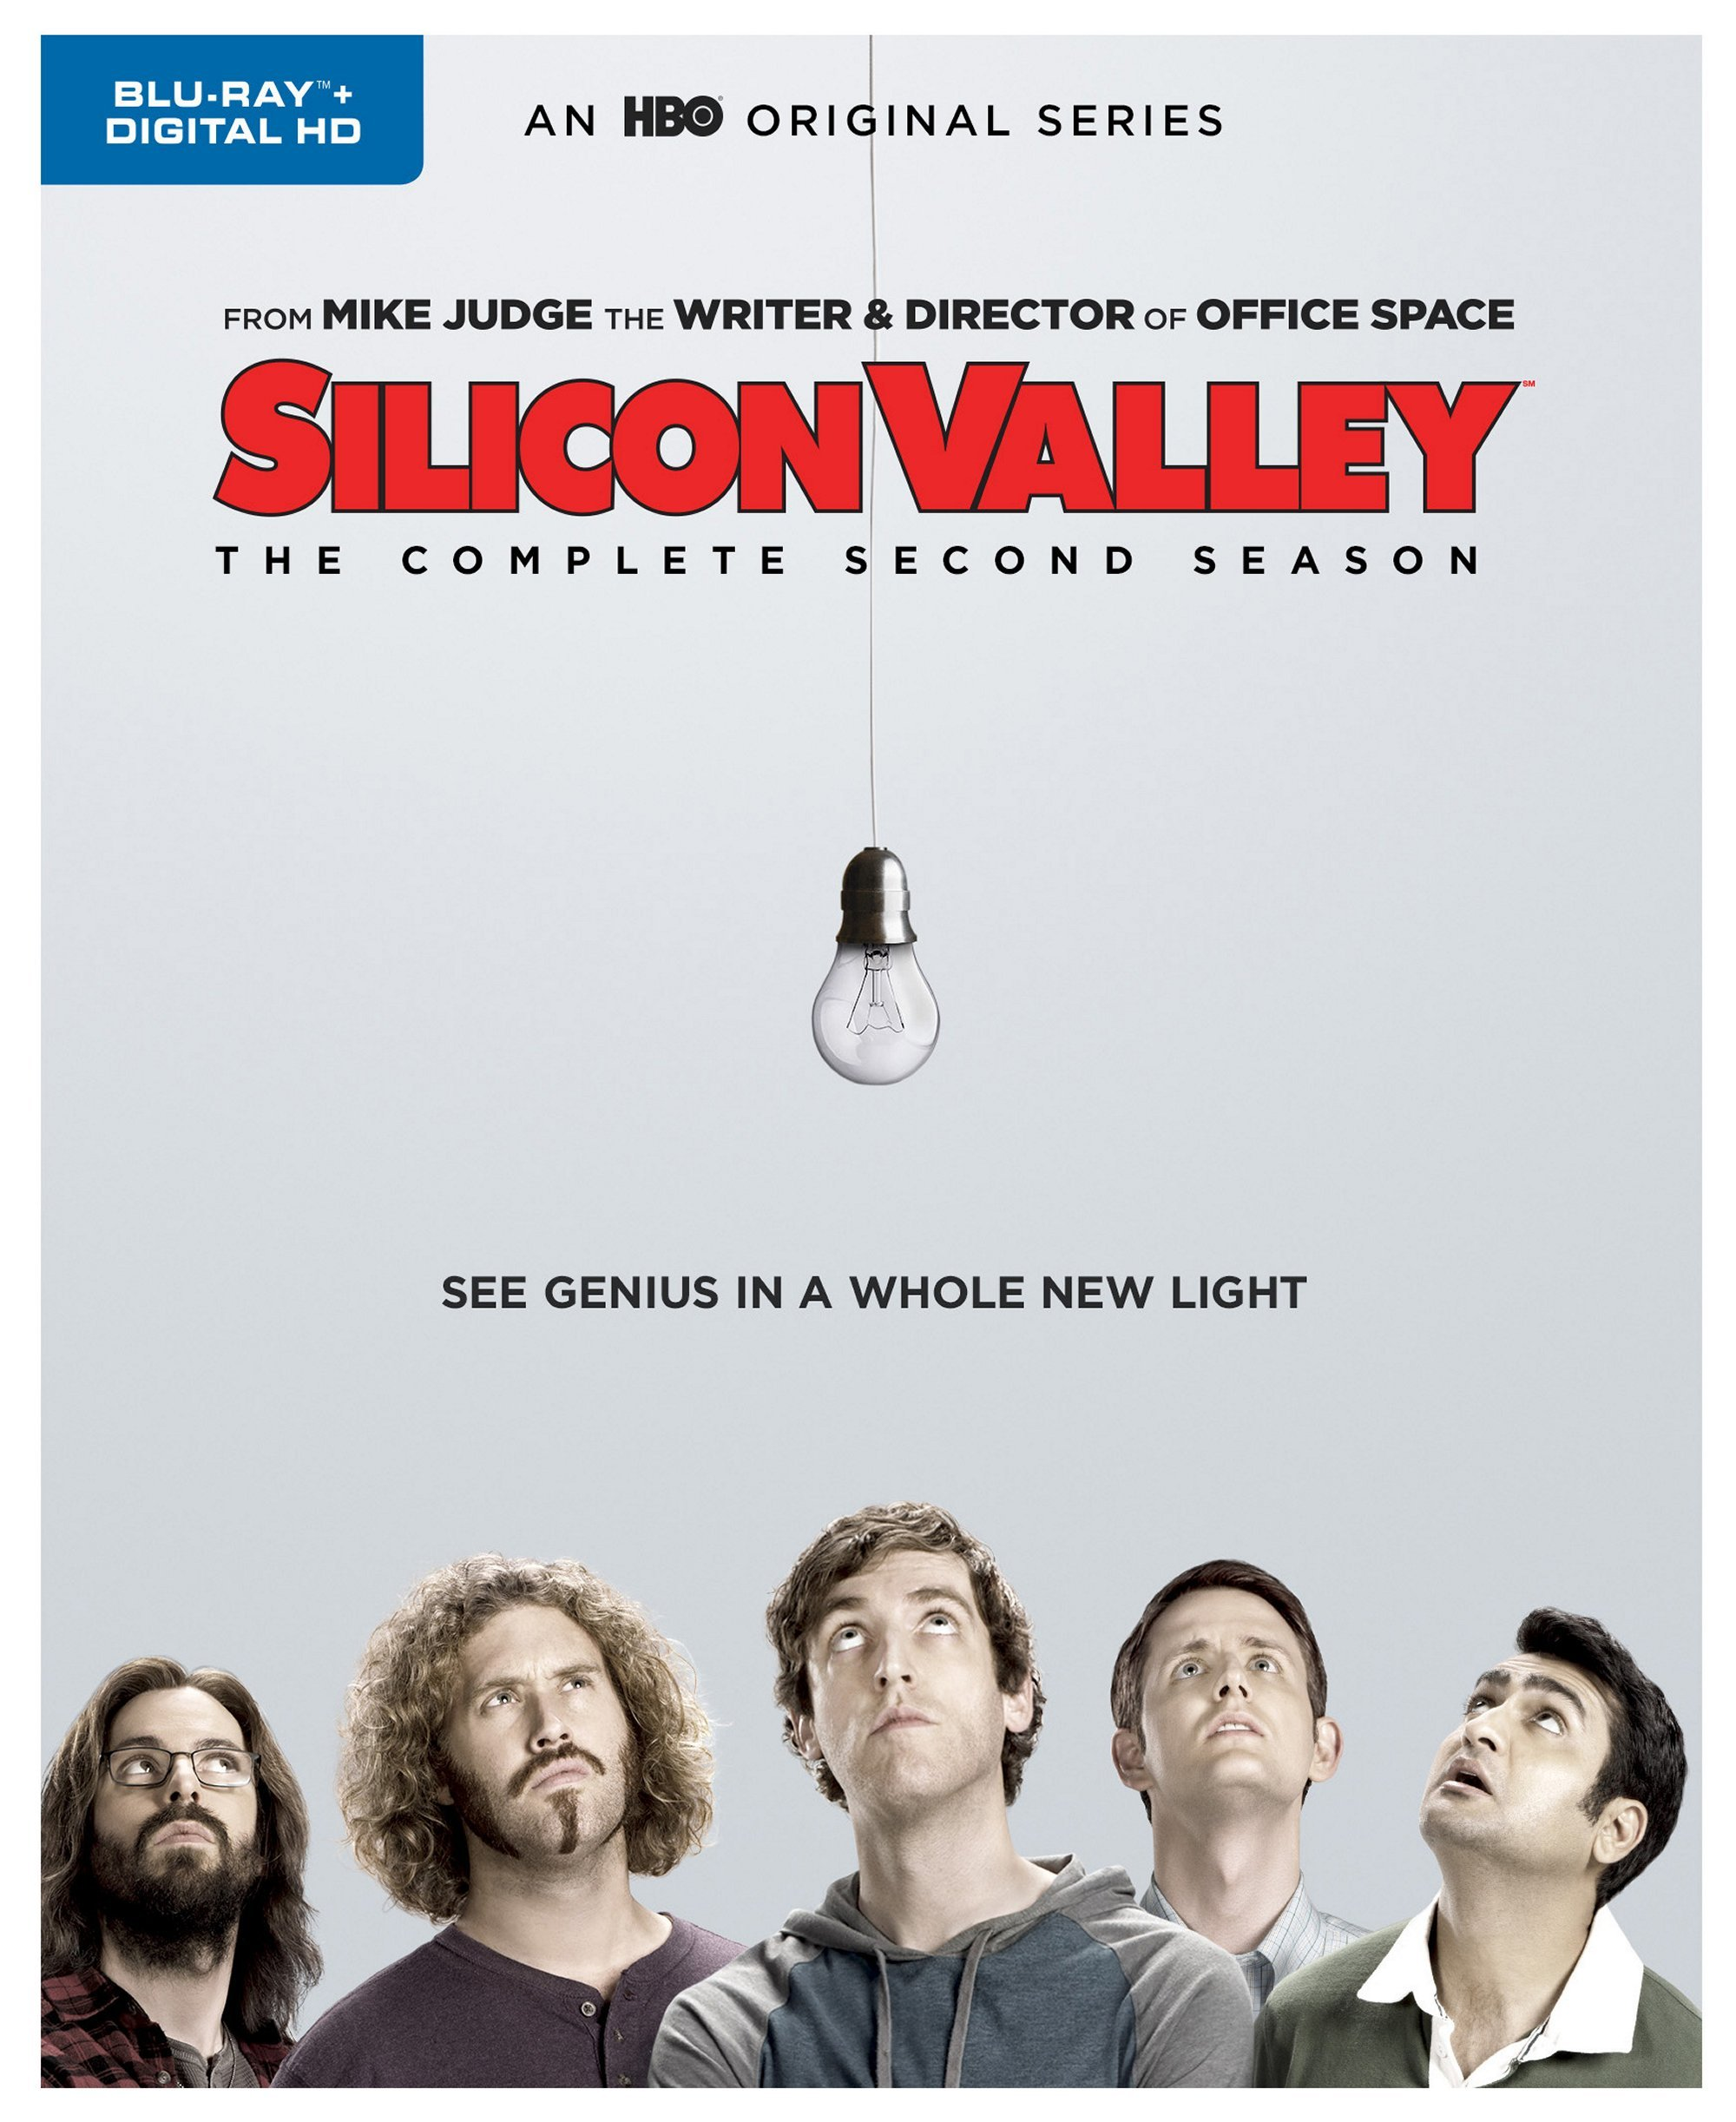 Blu-ray : Silicon Valley: The Complete Second Season (Full Frame, Eco Amaray Case, Dolby, 2 Pack, Digitally Mastered in HD)